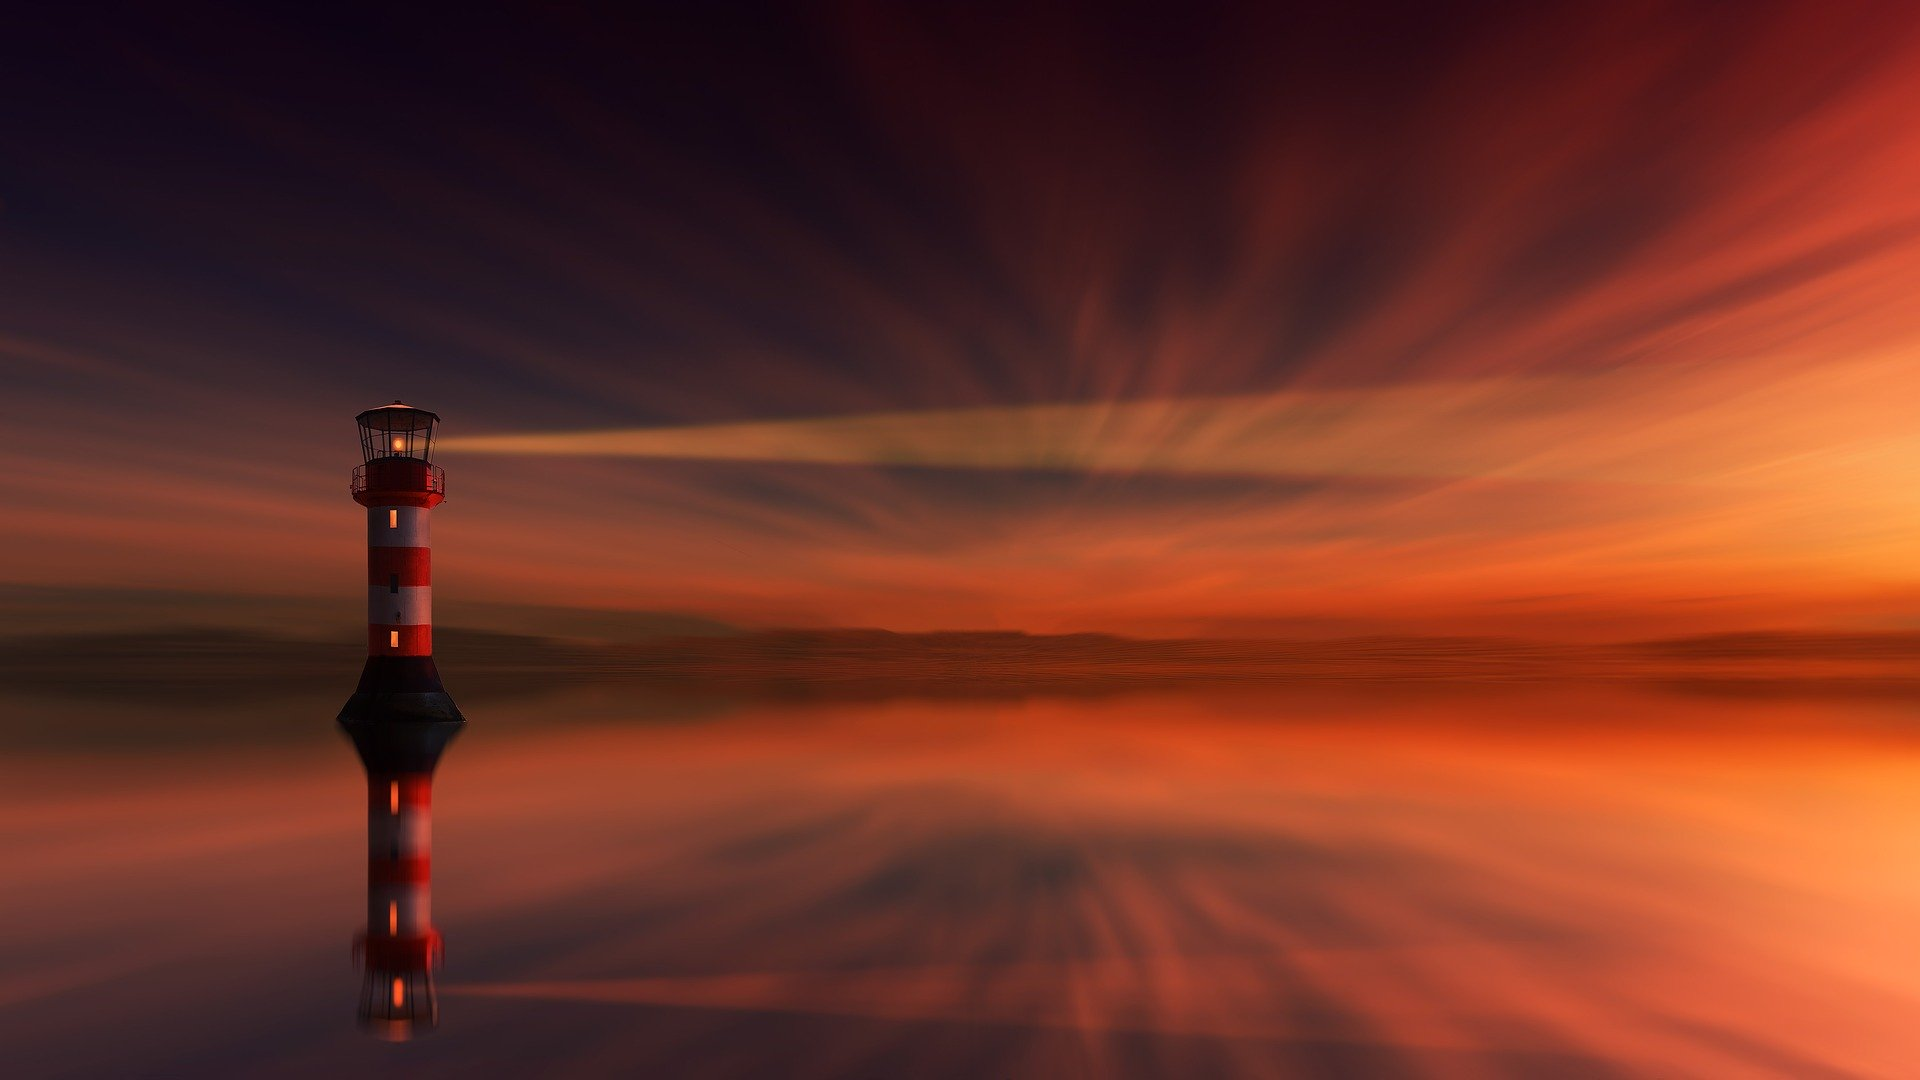 Are you a lighthouse in times of darkness?